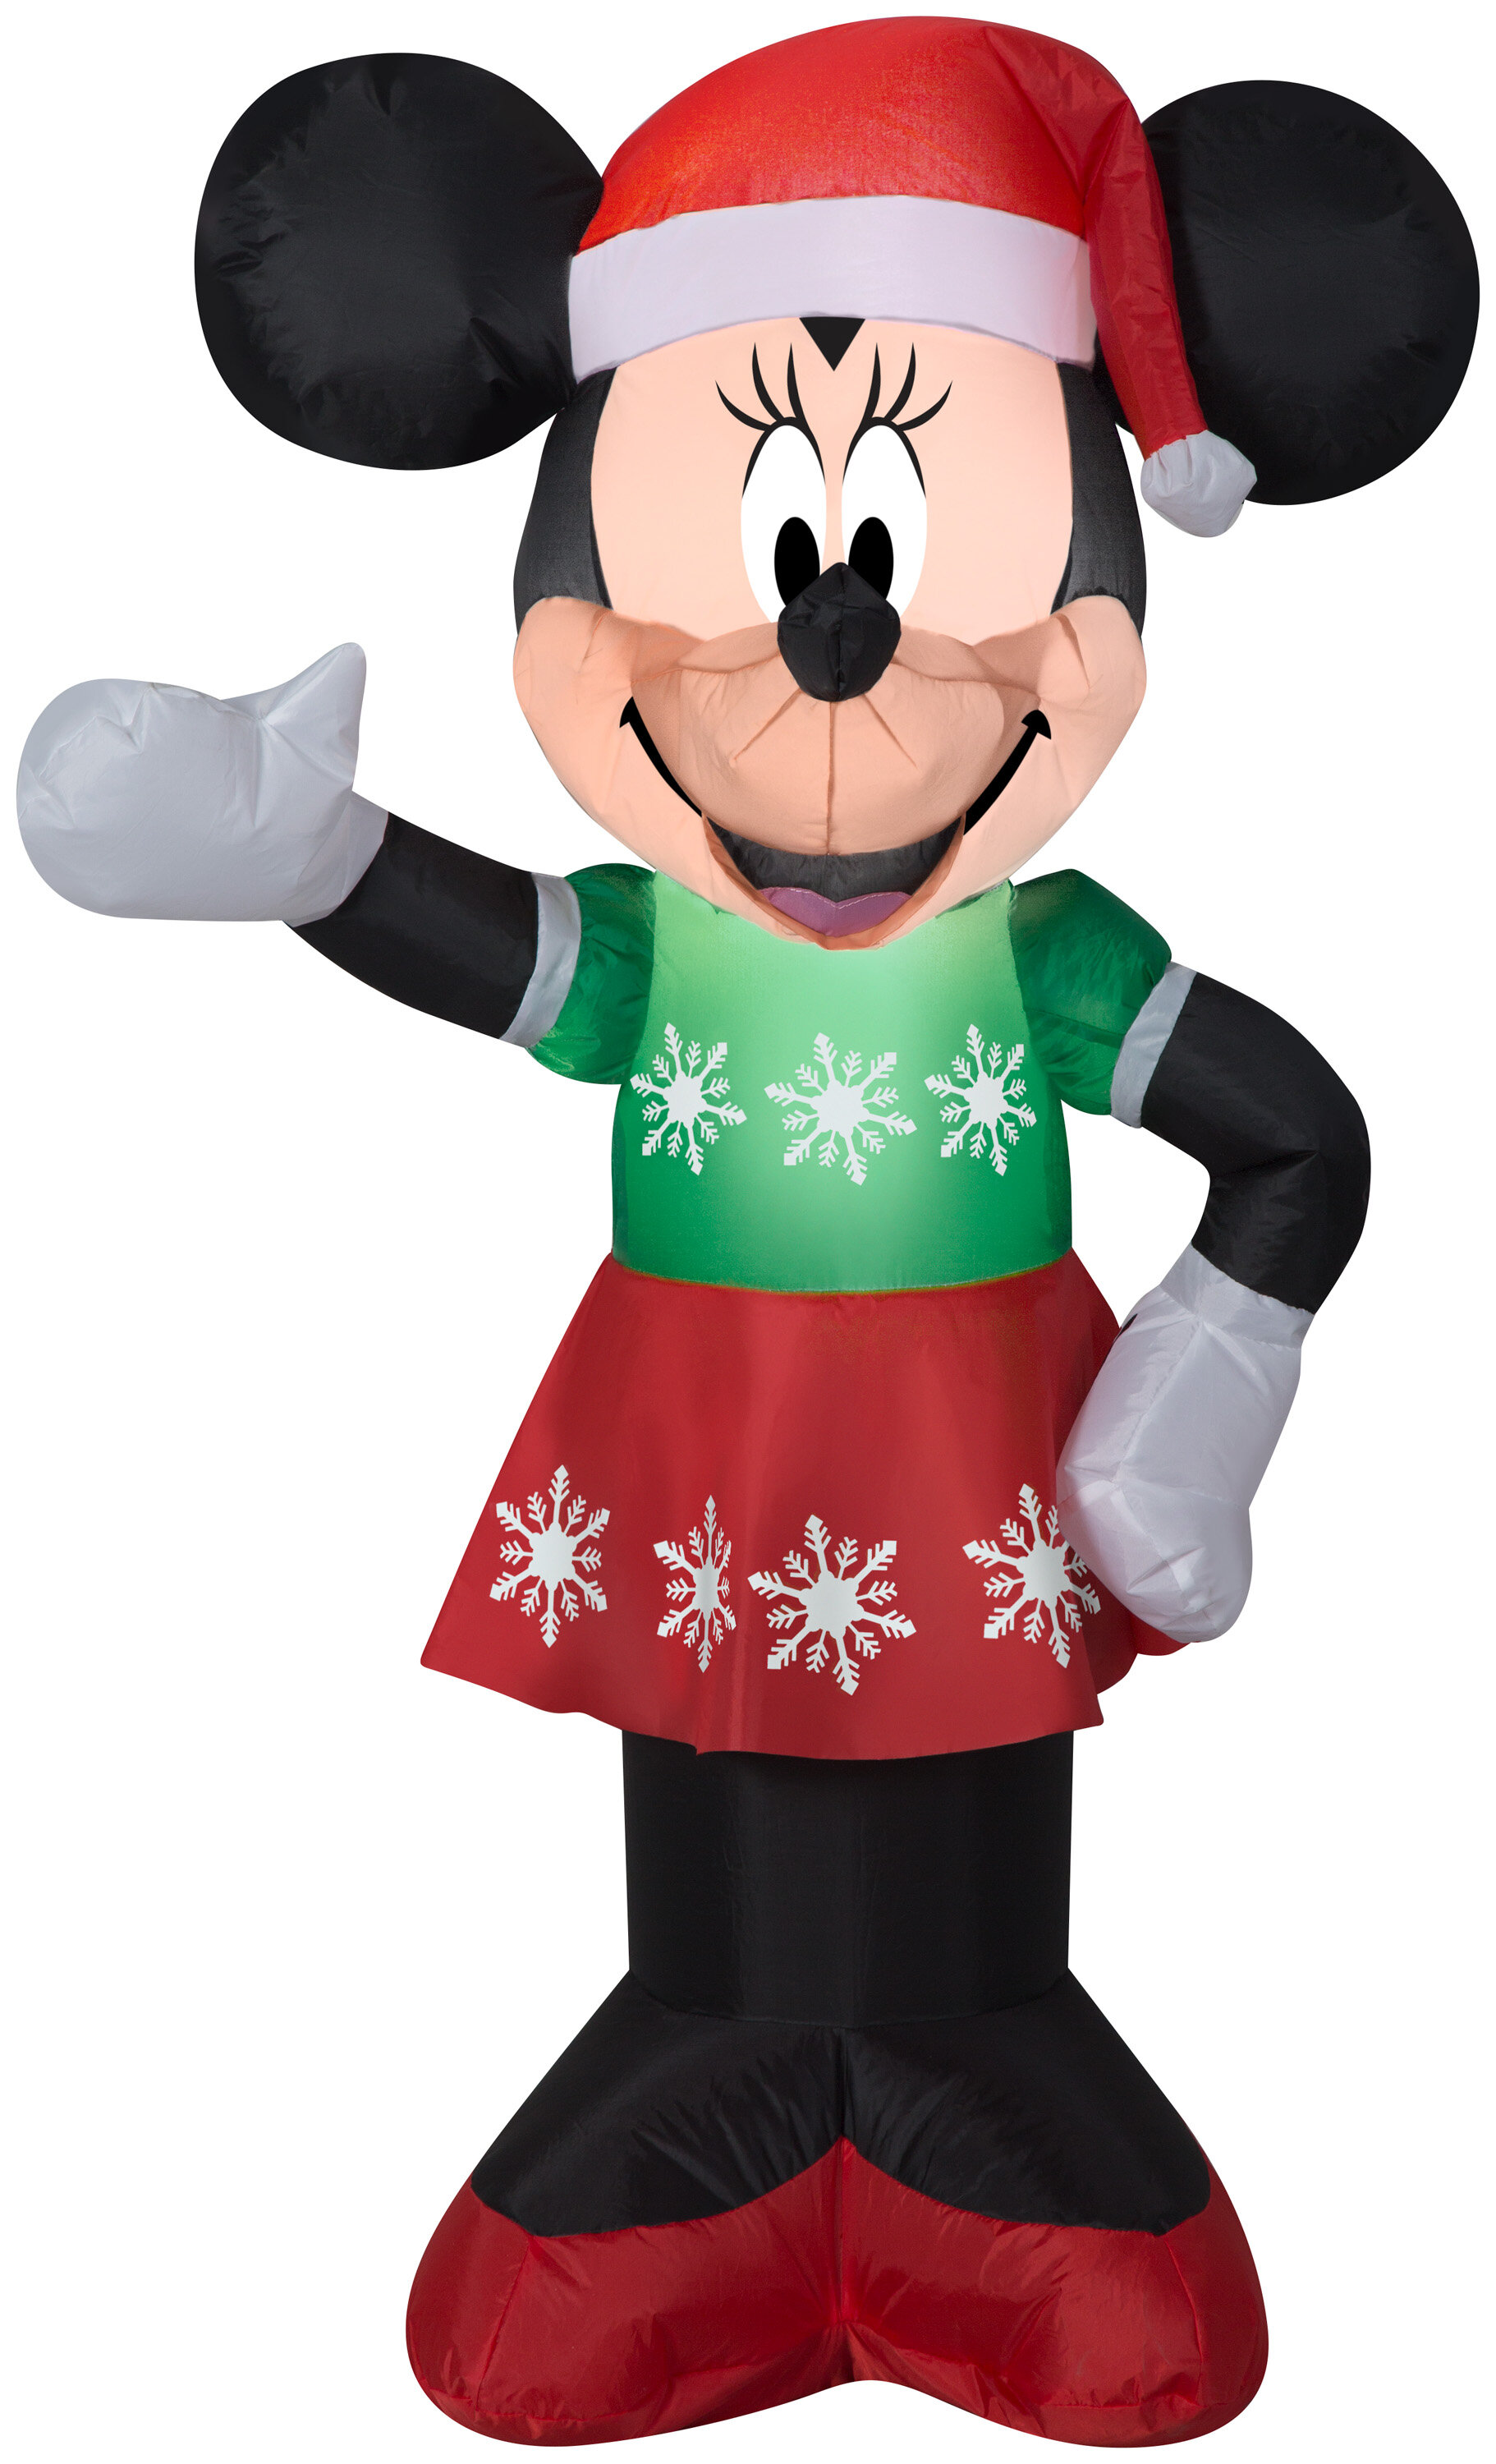 Gemmy Industries Airblown Minnie Mouse in Snowflake Dress Disney Christmas Inflatable | Wayfair